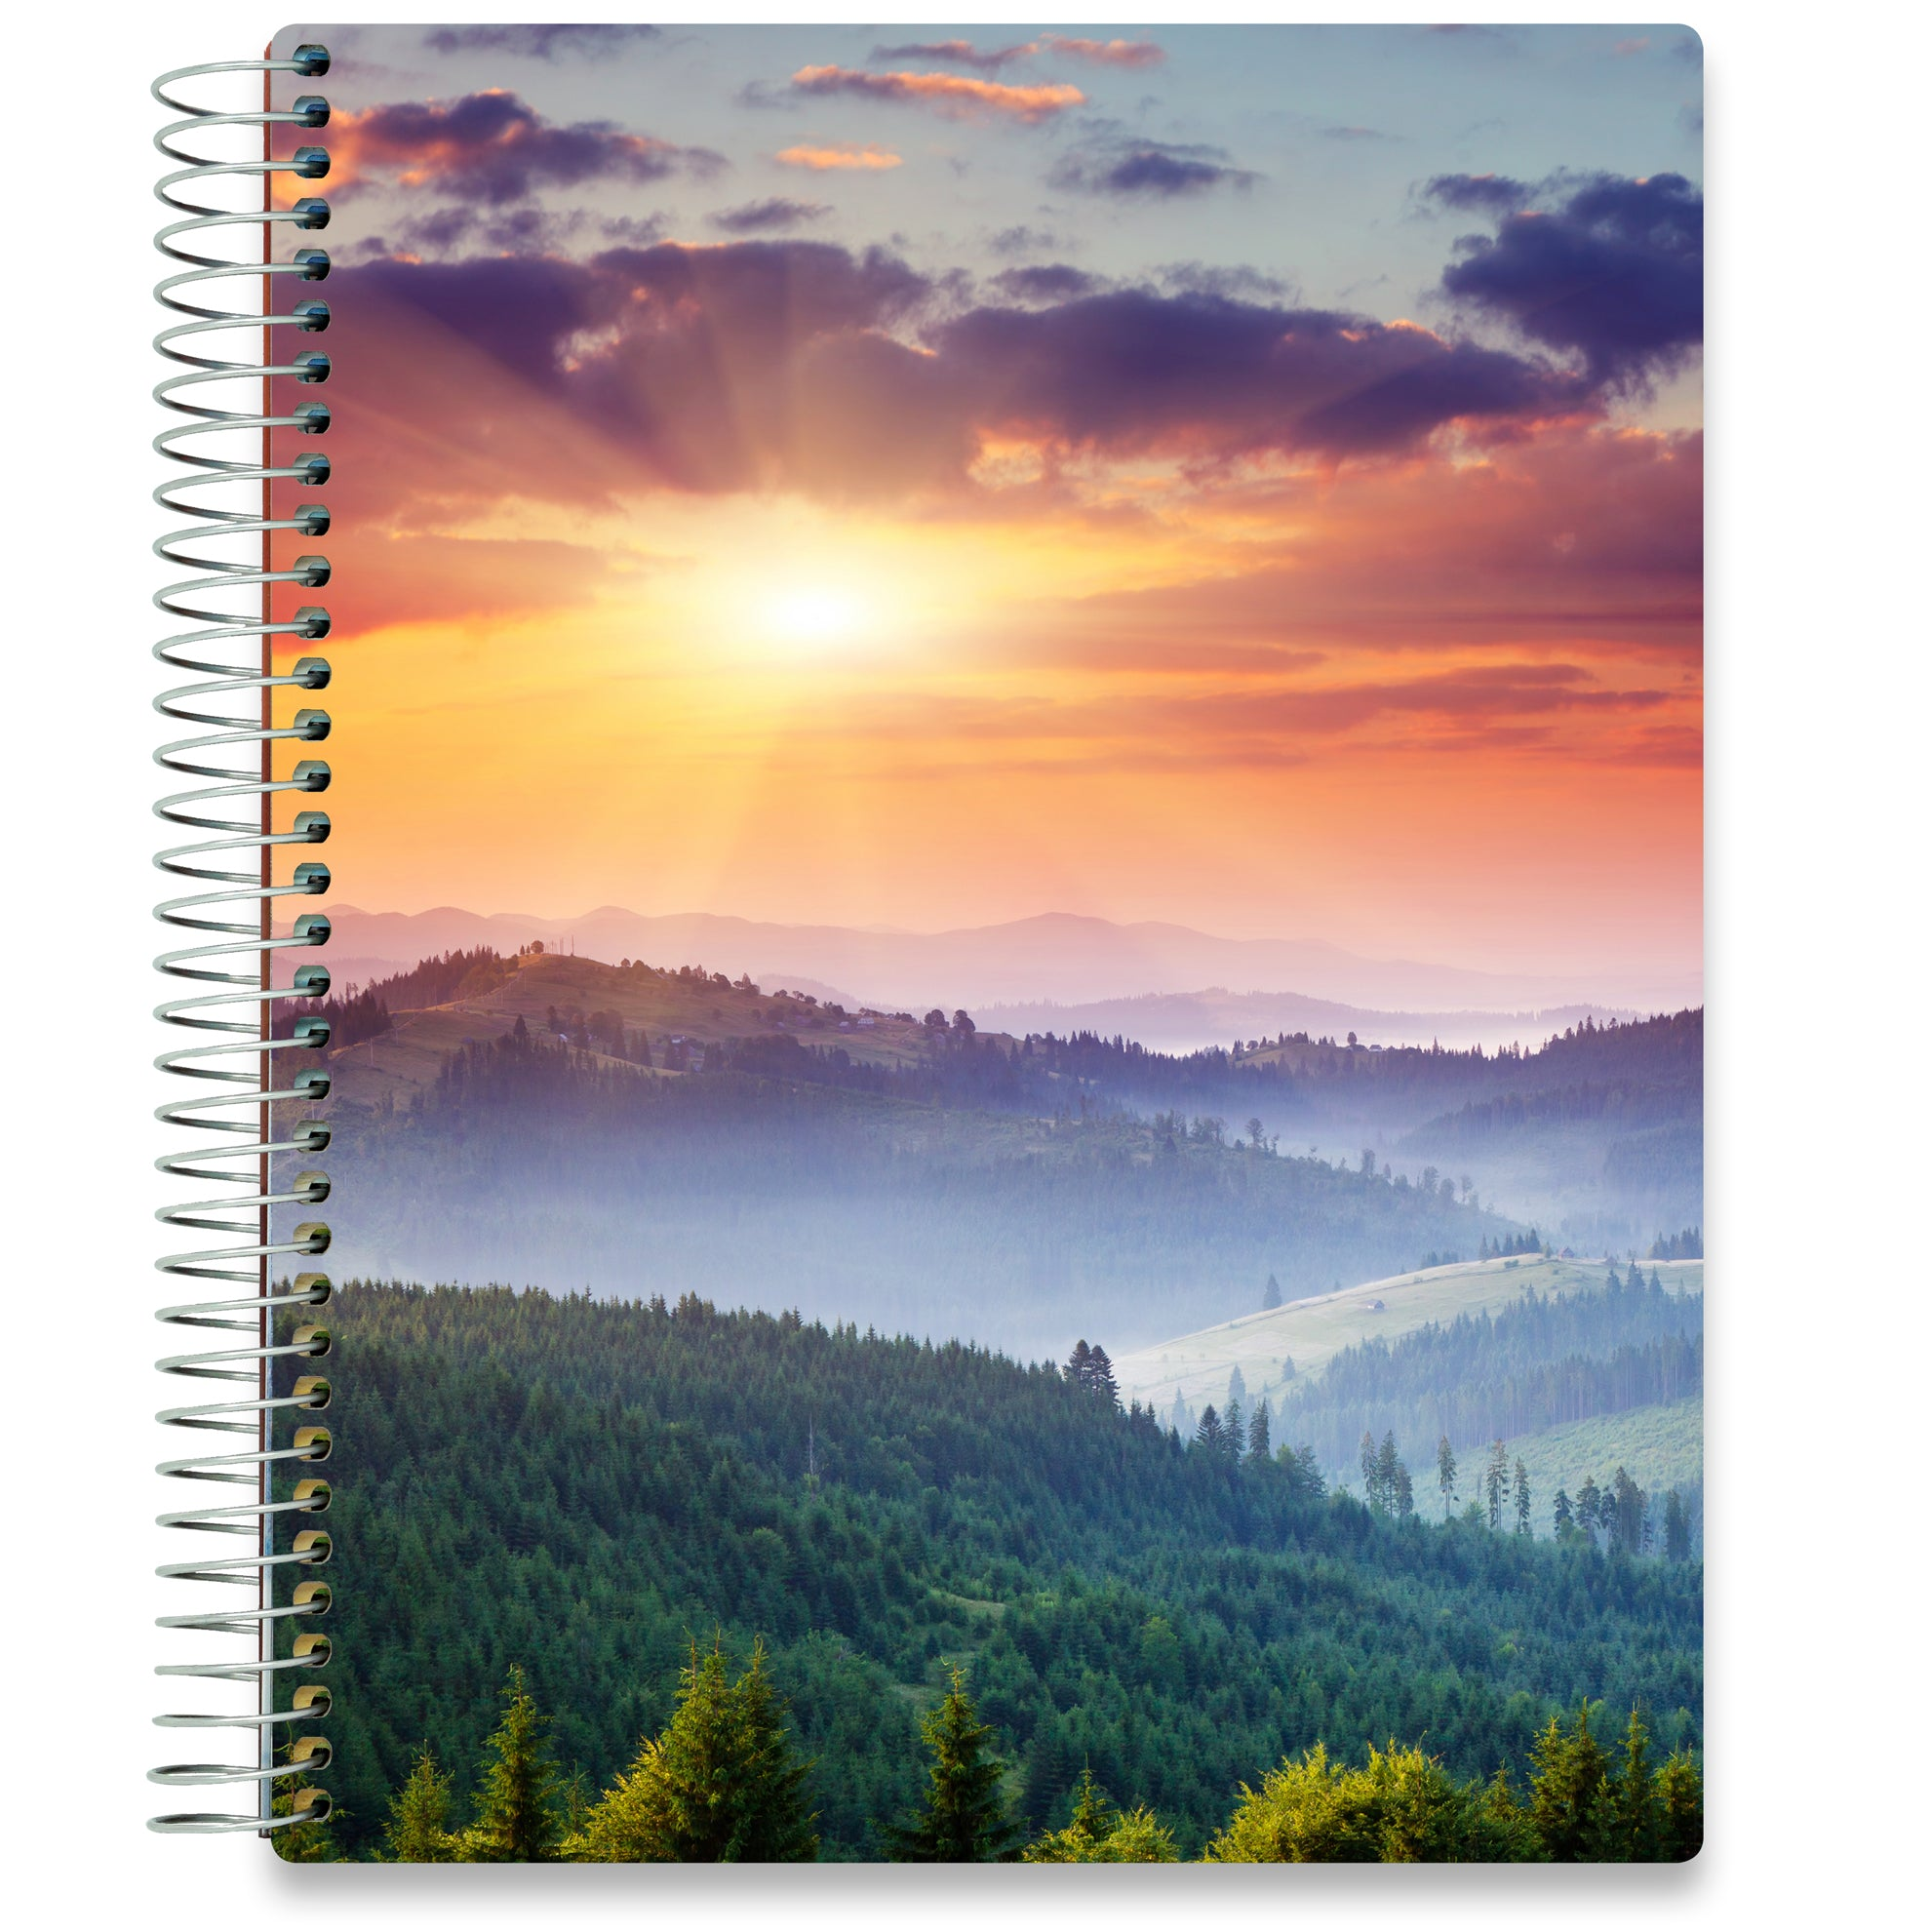 NEW: April 2020-2021 Planner - 8.5x11 - Majestic Sunset-Office Product-Tools4Wisdom